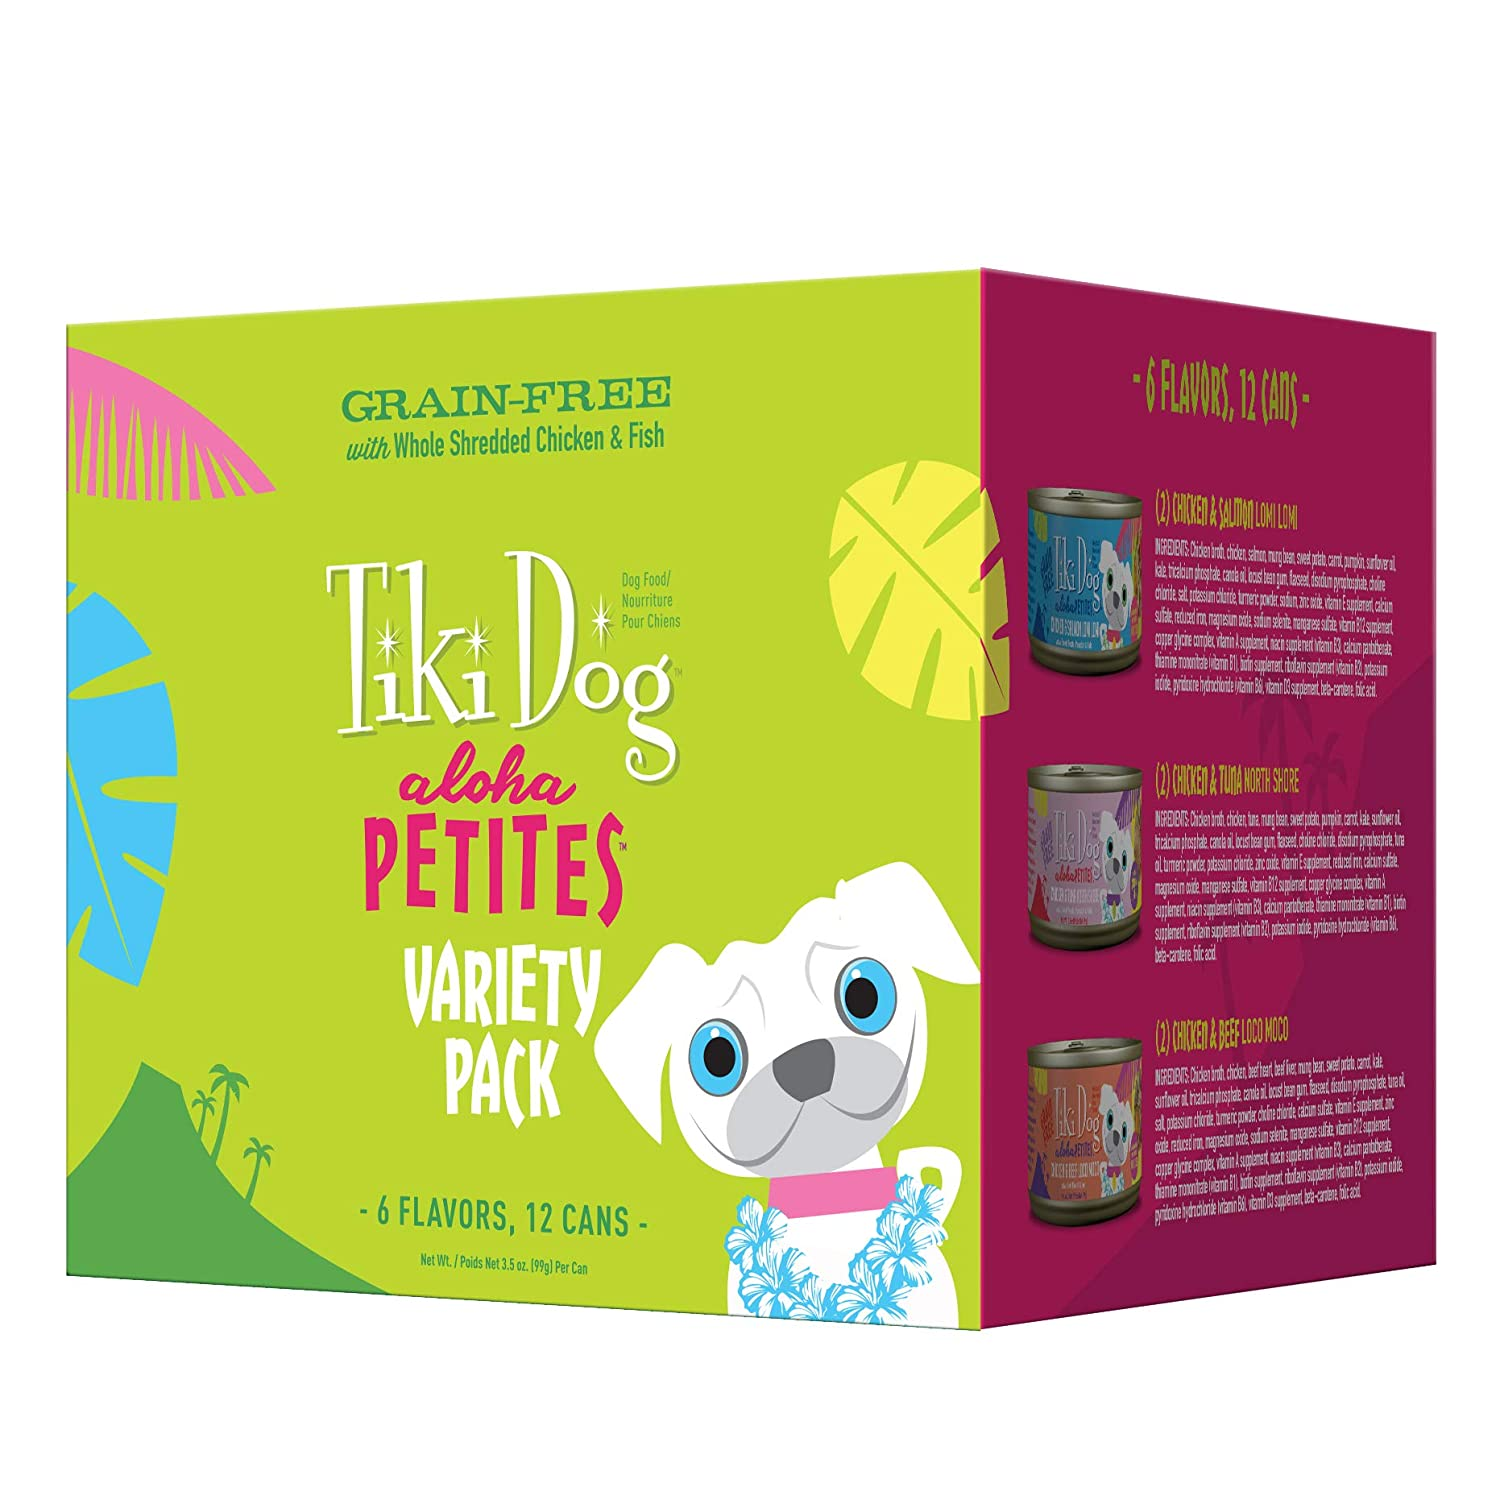 Tiki Dog Aloha Petites Gluten & Grain Free Wet Food for Adult Dogs with Shredded Meat & Superfoods